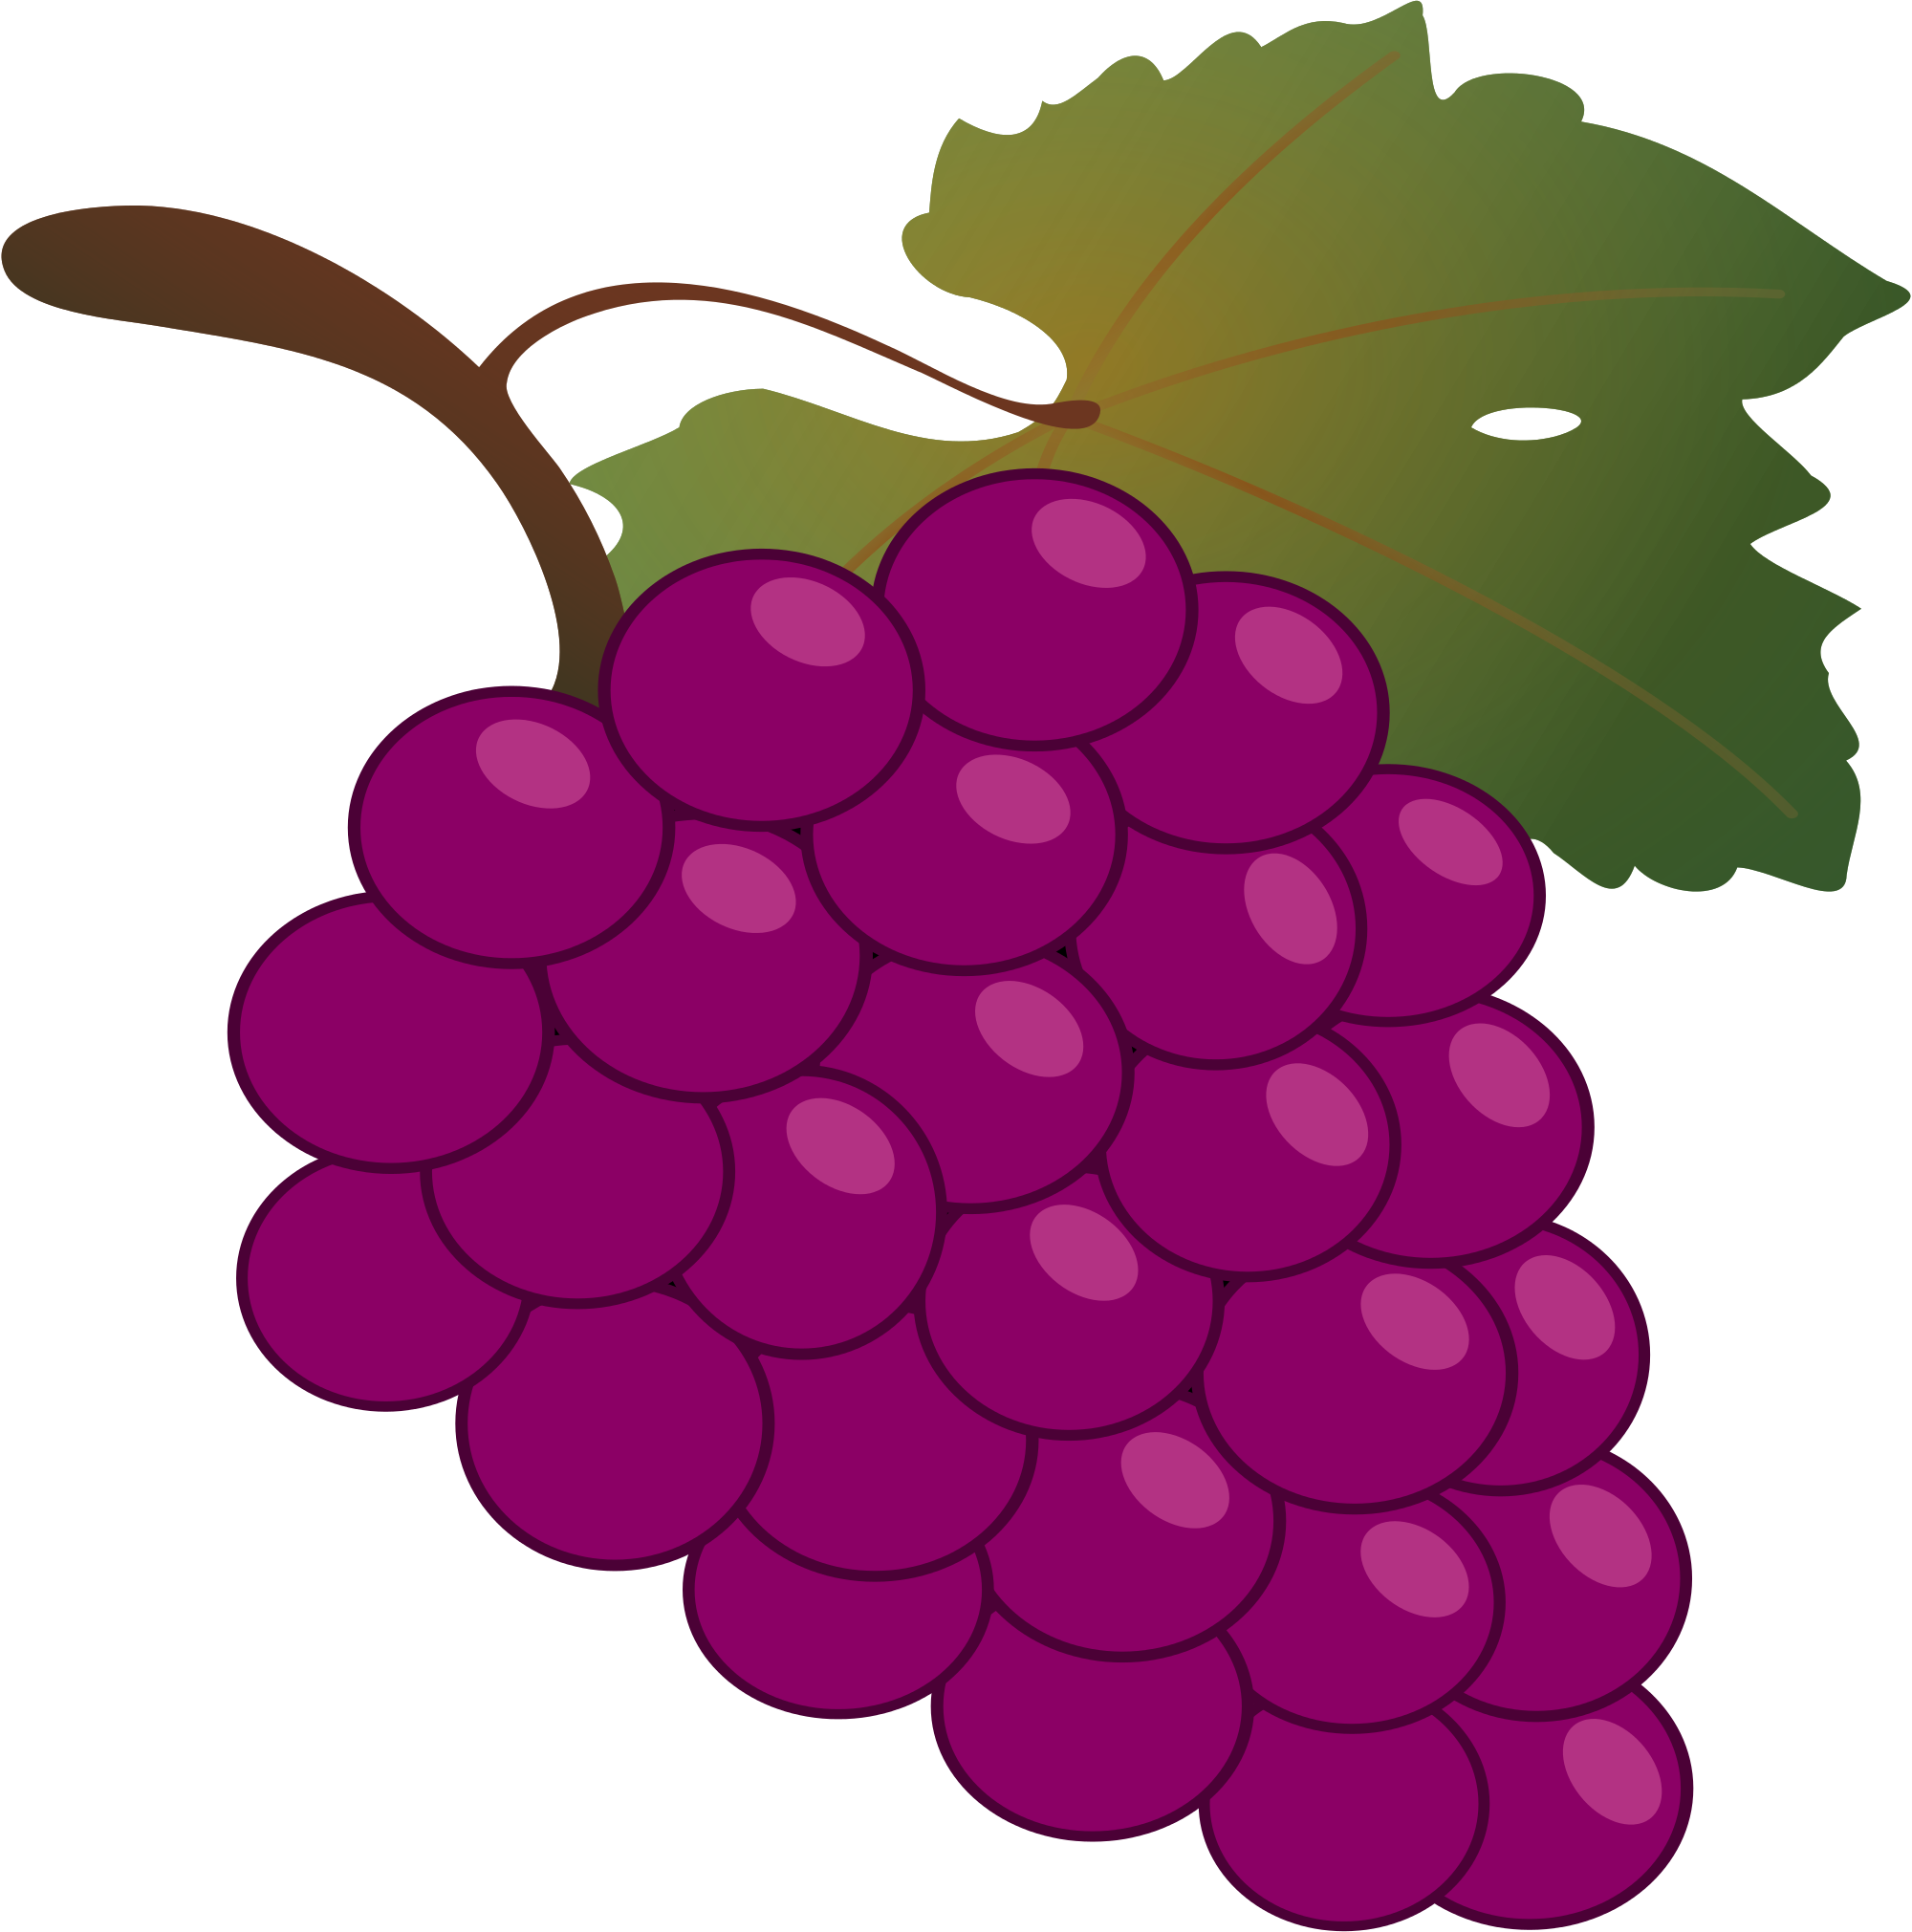 Grapes clipart vector, Grapes vector Transparent FREE for.